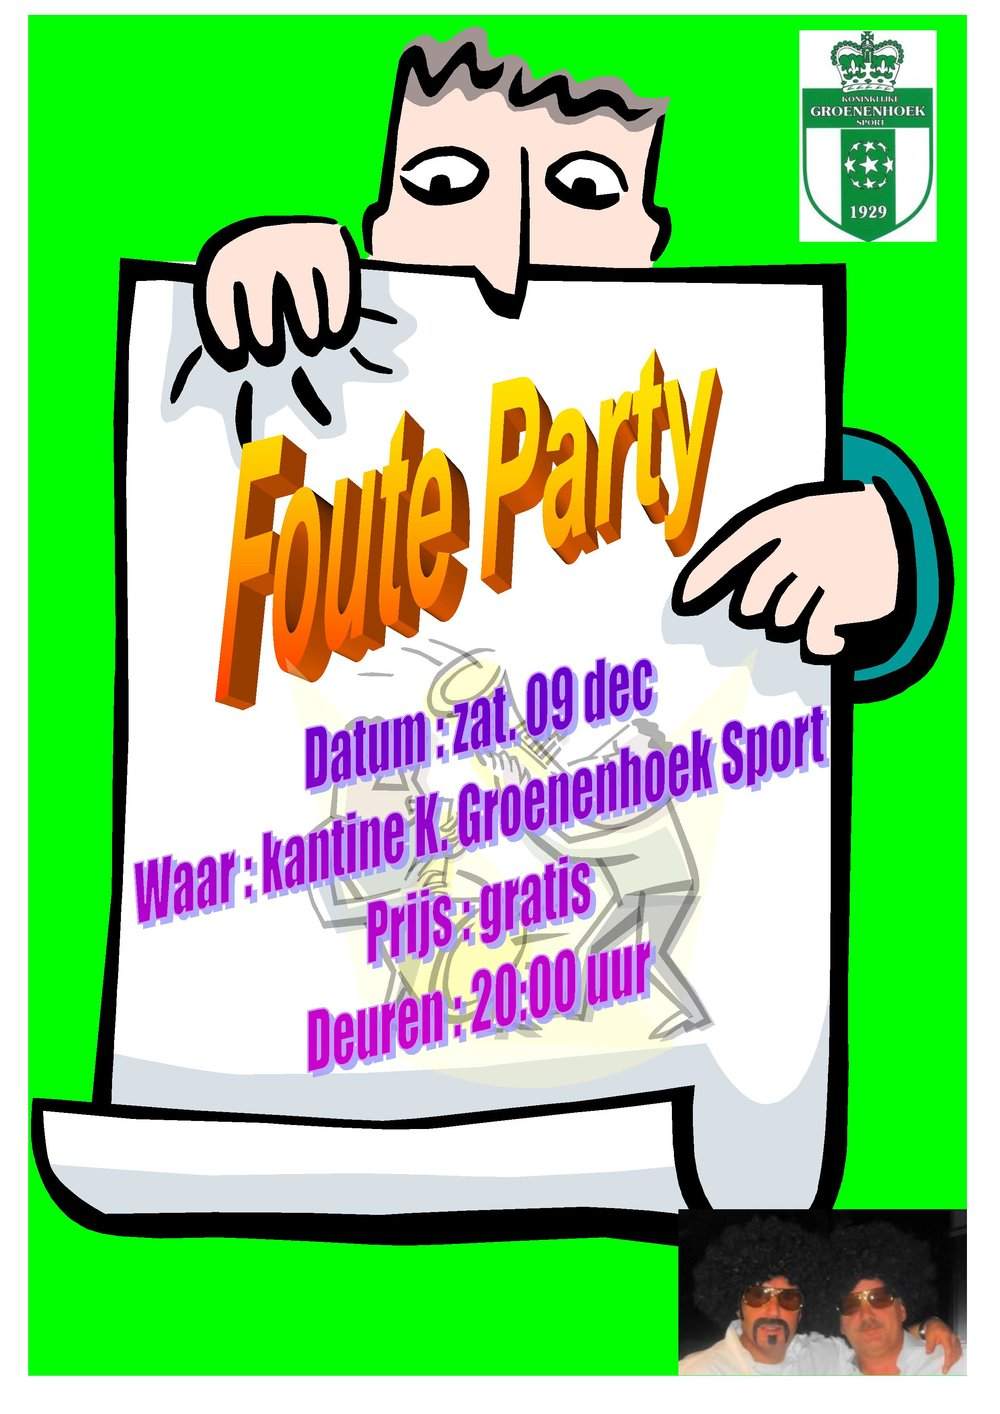 Foute party 2.jpg